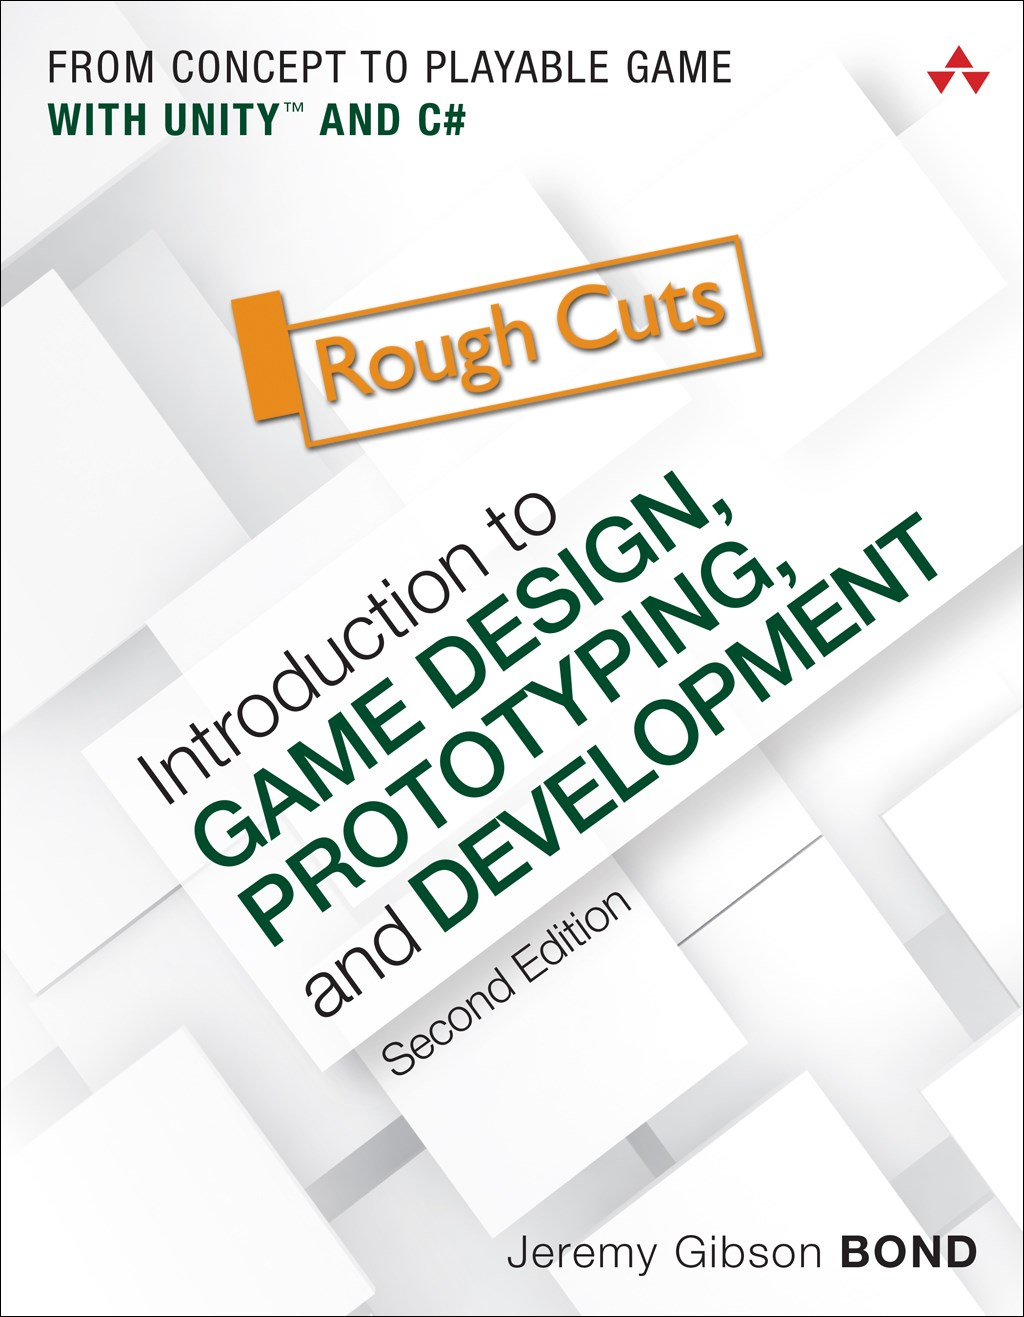 Introduction to Game Design, Prototyping, and Development: From Concept to Playable Game with Unity and C#, Rough Cuts, 2nd Edition